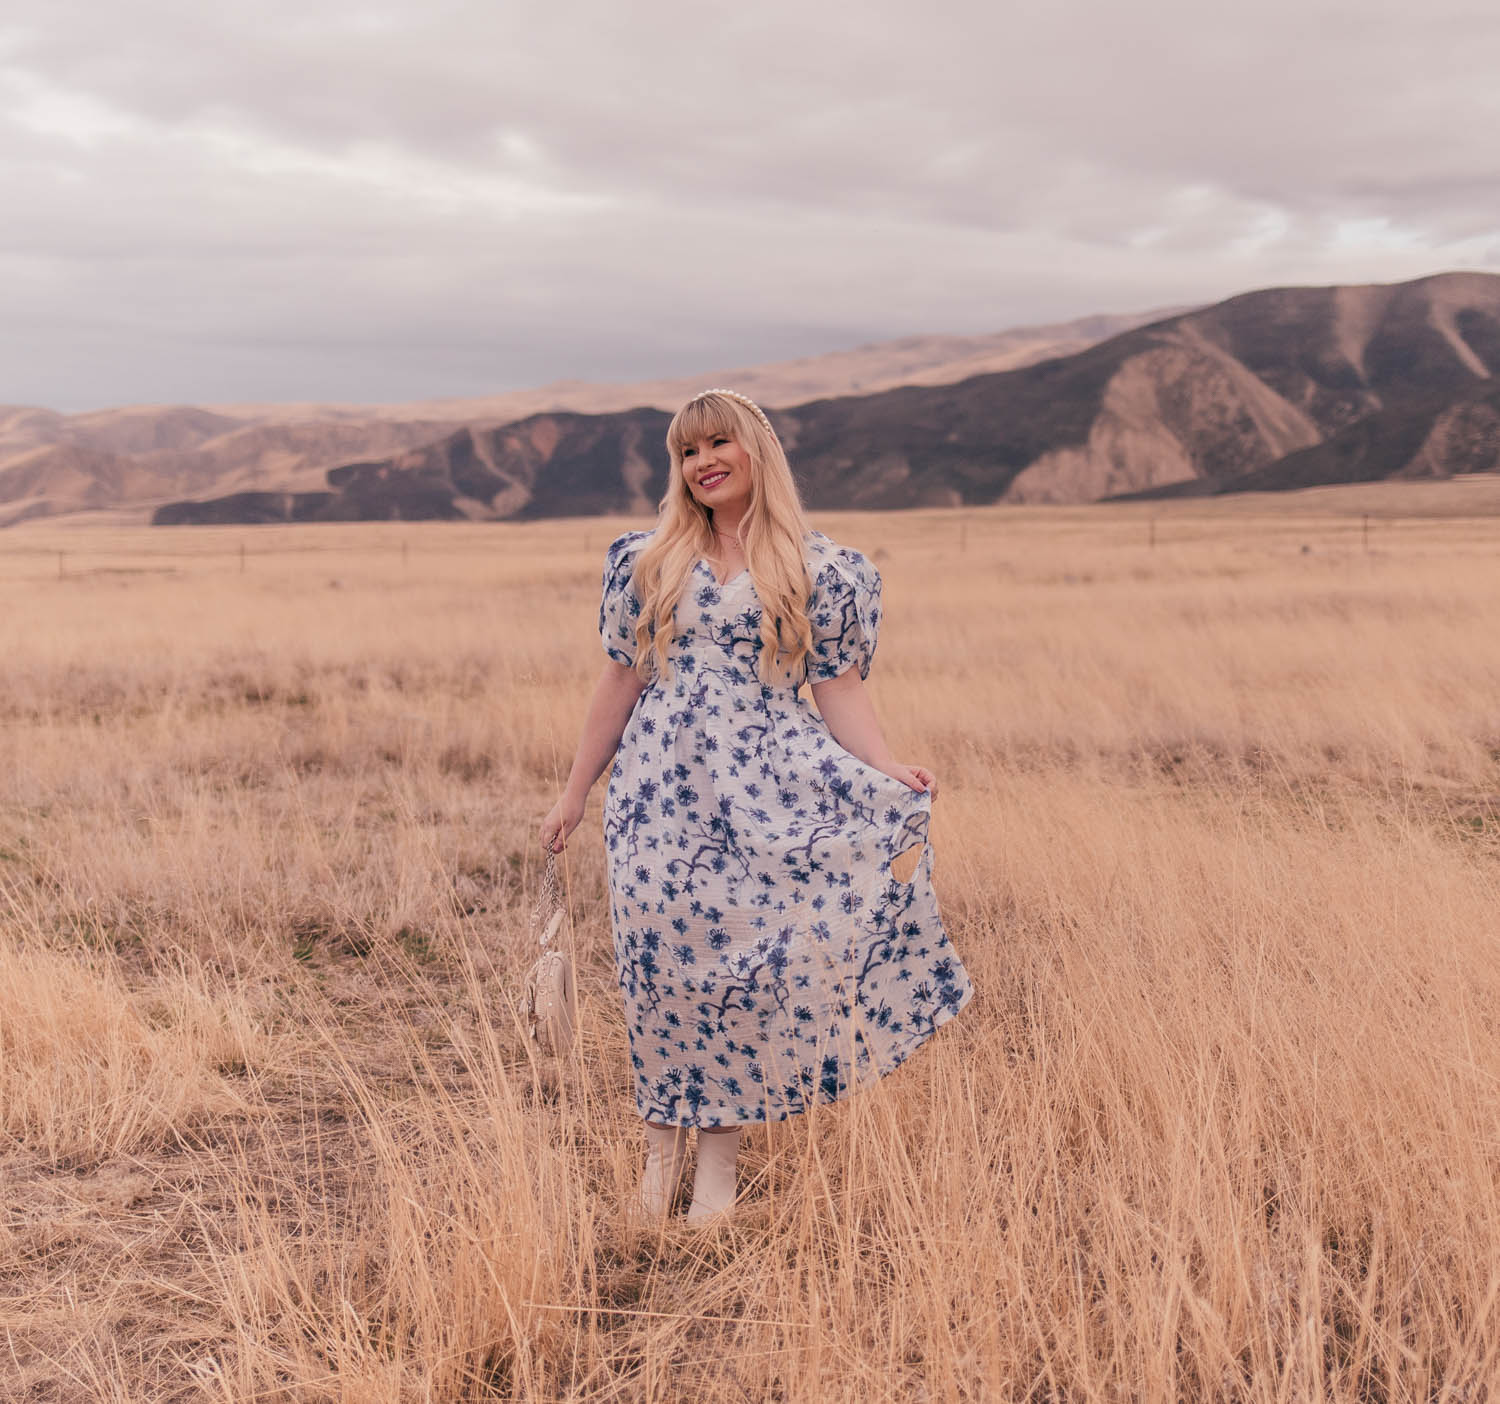 Feminine fashion blogger Elizabeth Hugen of Lizzie in Lace wears a beautiful white and blue floral dress for spring and shares an interview with Syra J.